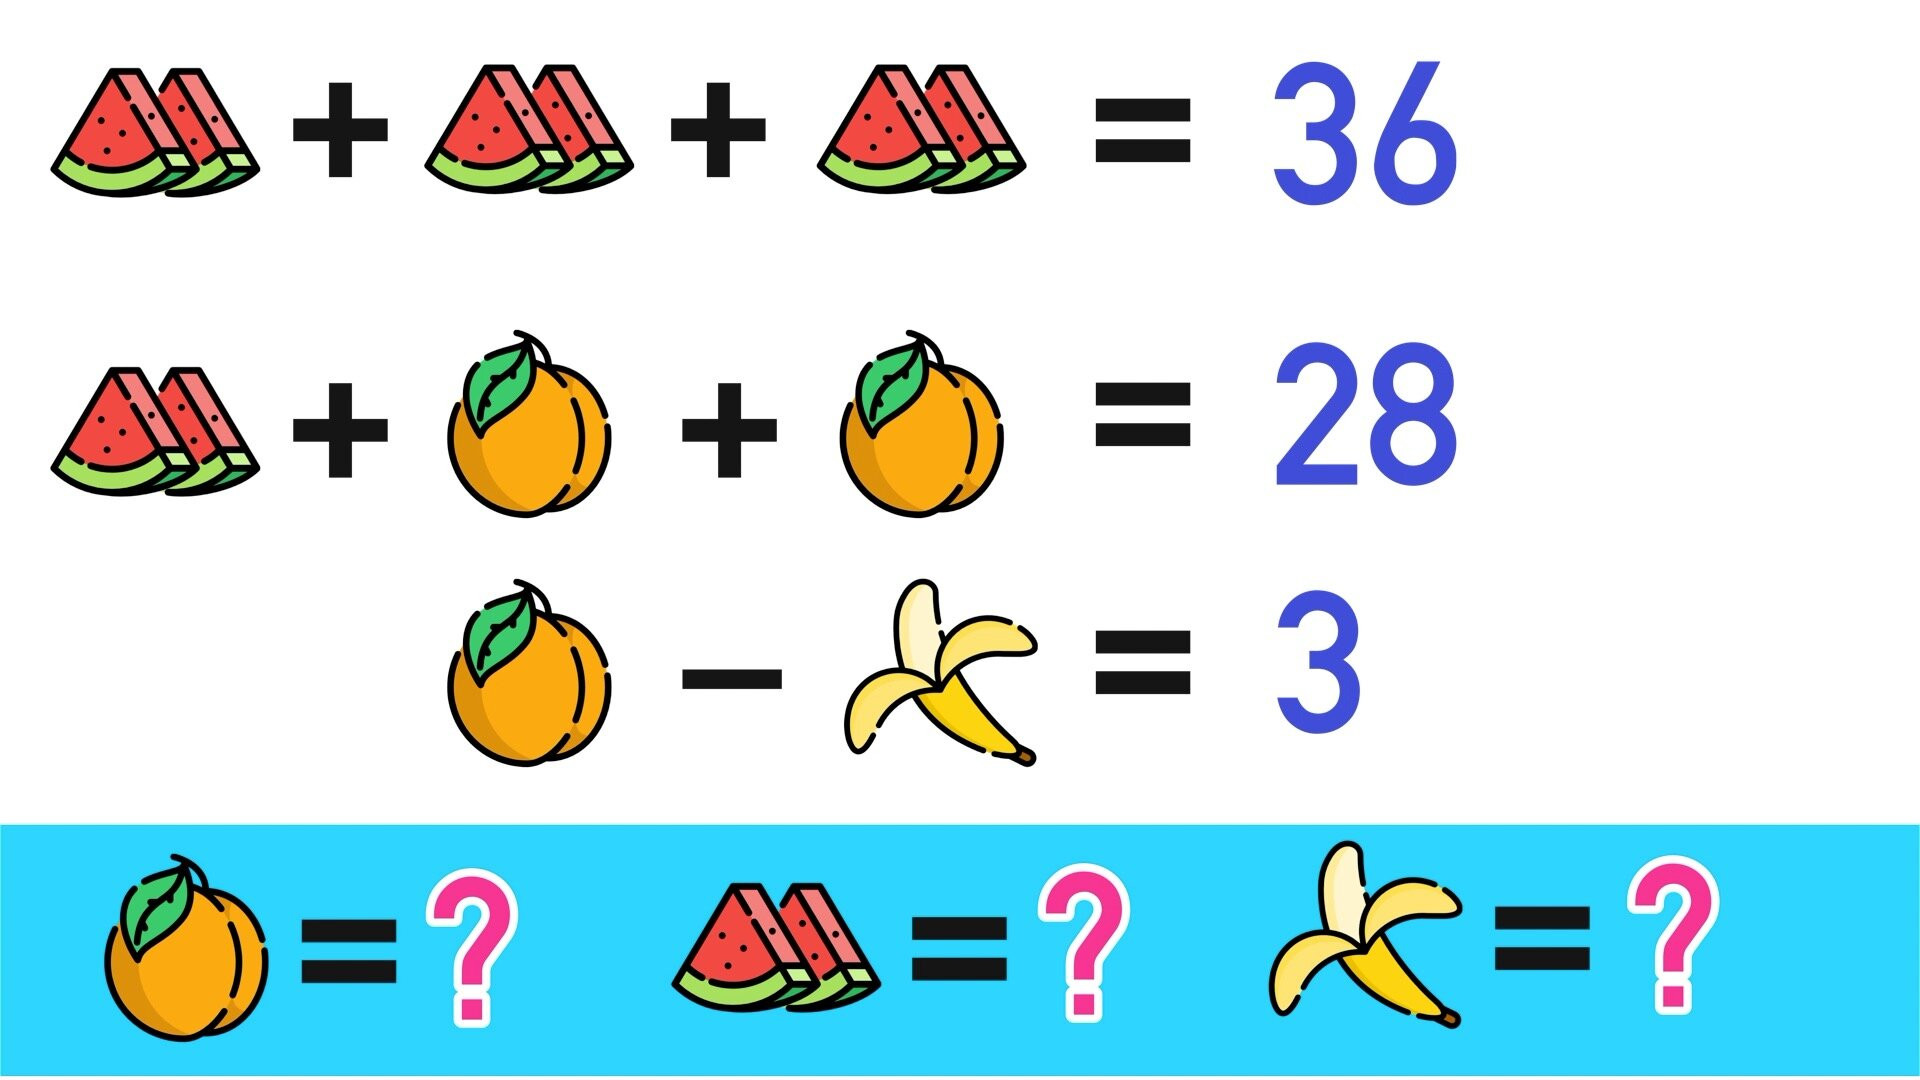 6th Grade Math Puzzles Pdf 7 Super Fun Math Logic Puzzles for Kids — Mashup Math